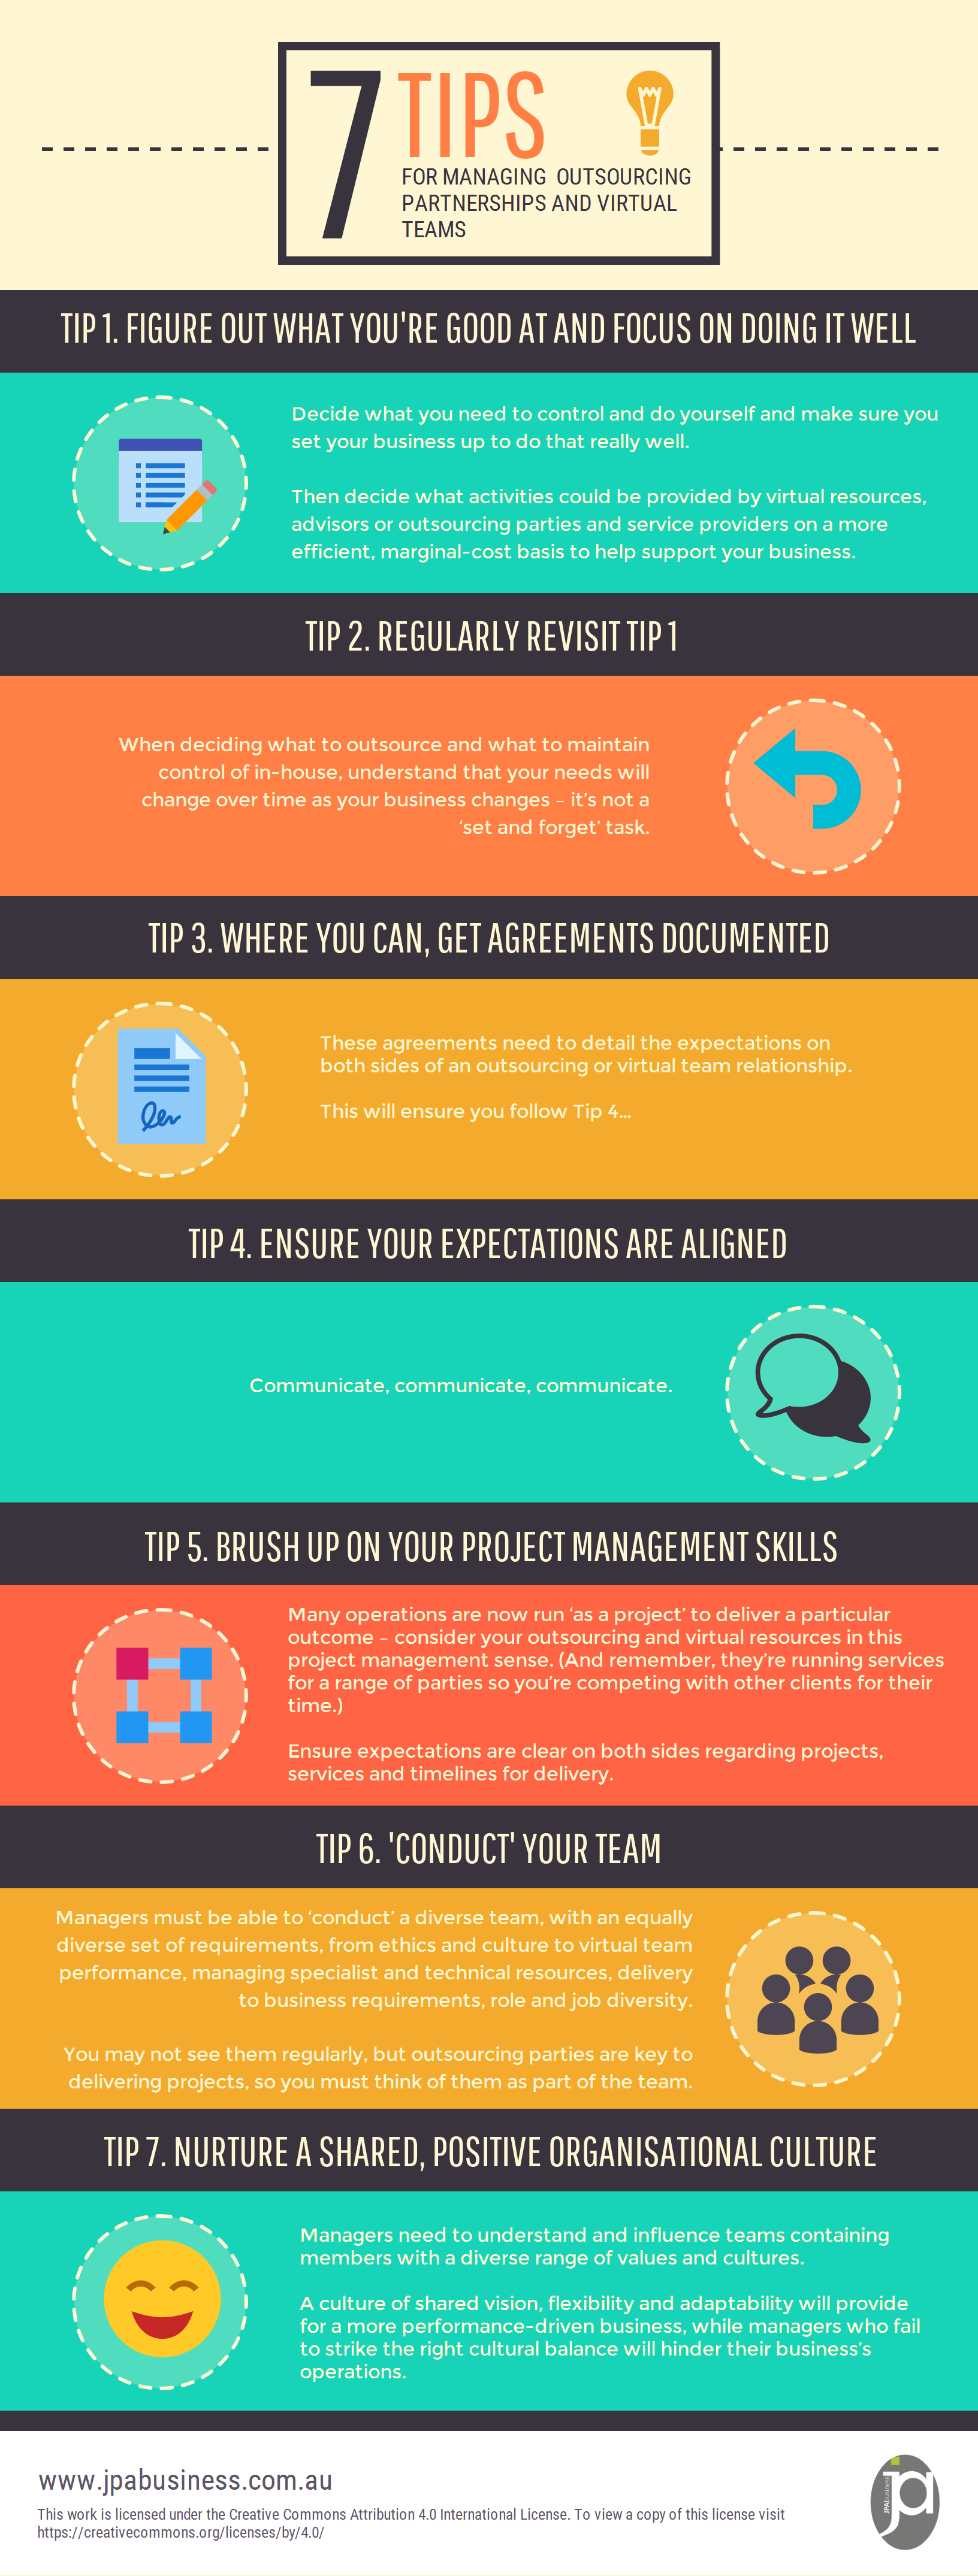 7-tips-for-managing-outsourcing.png